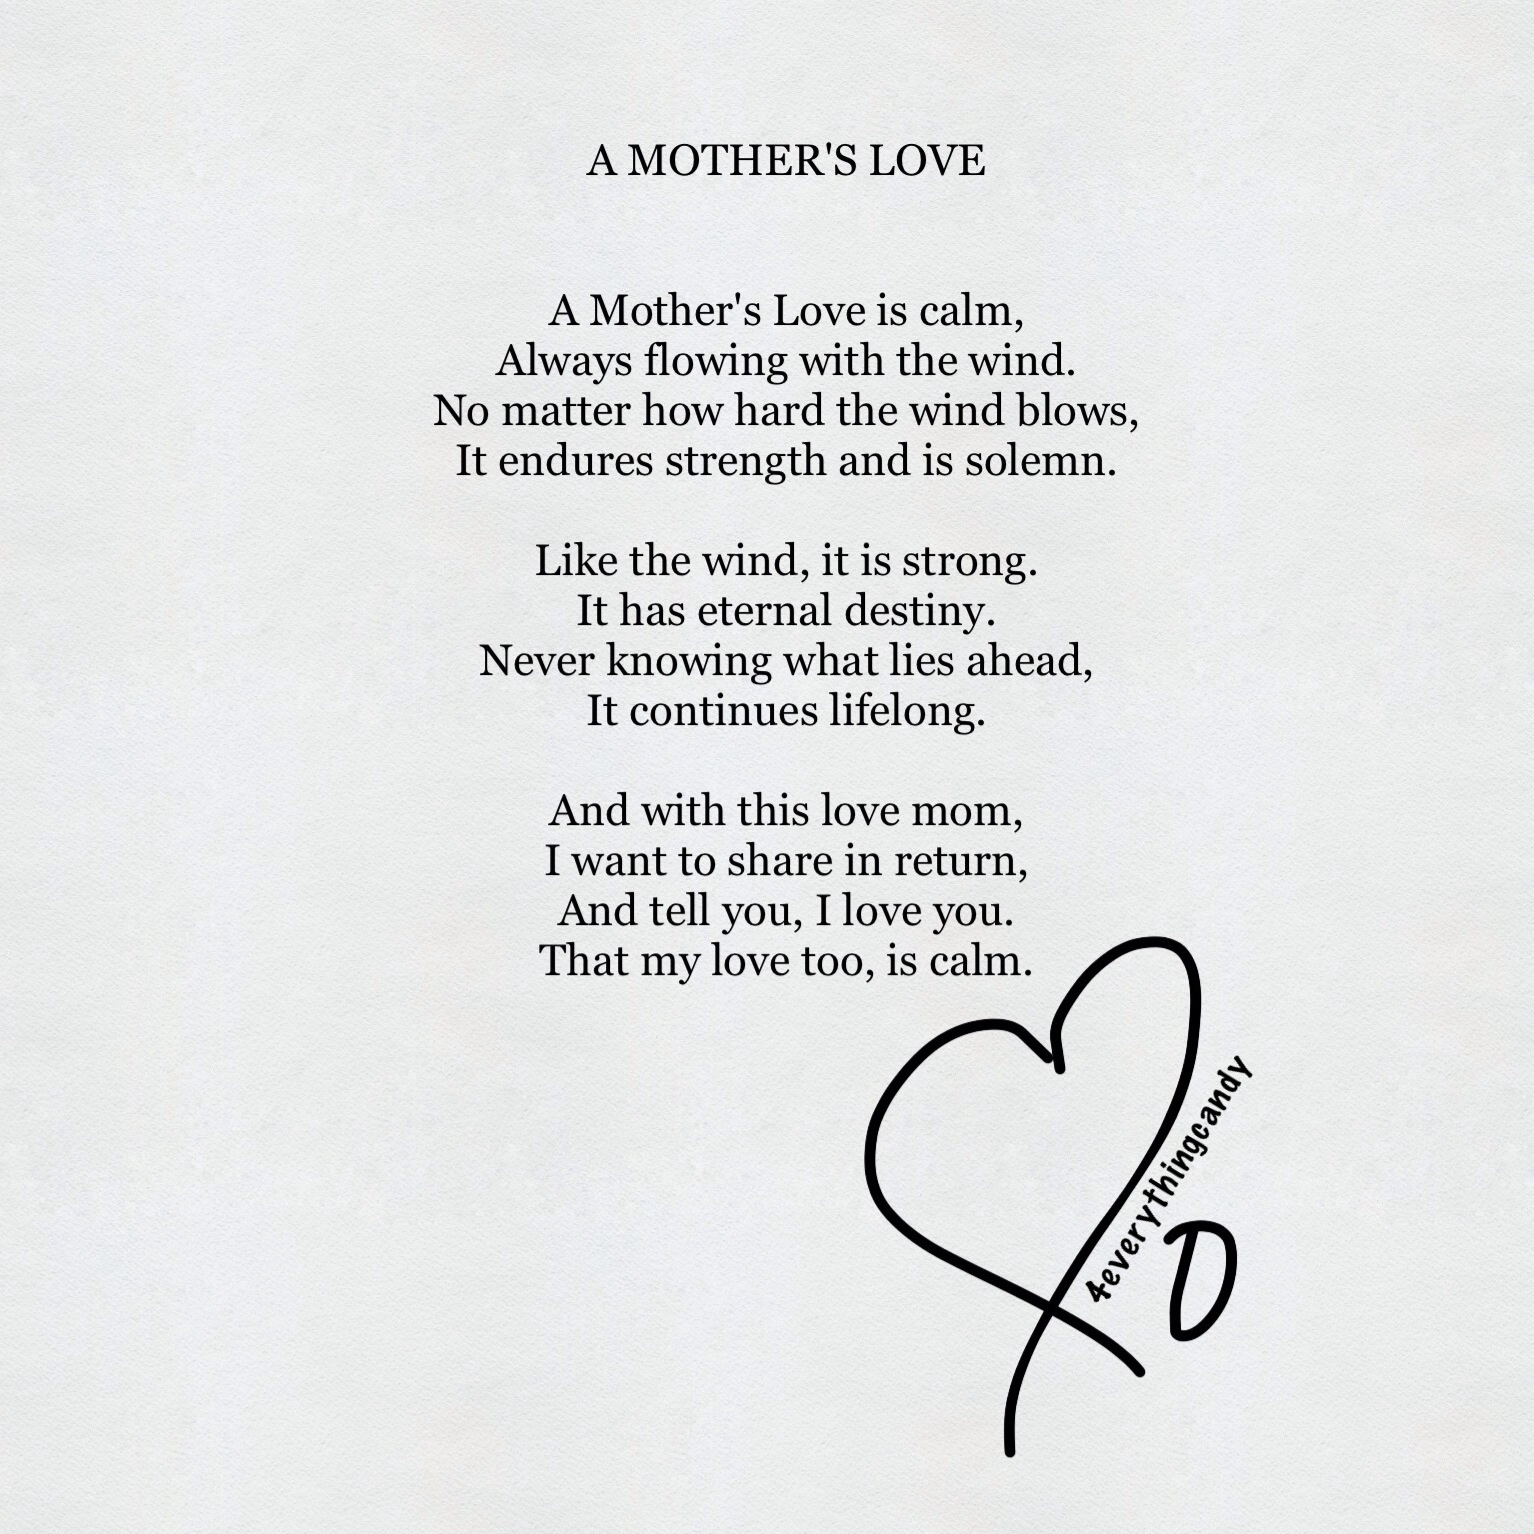 A Mother's Love | 4everythingcandy